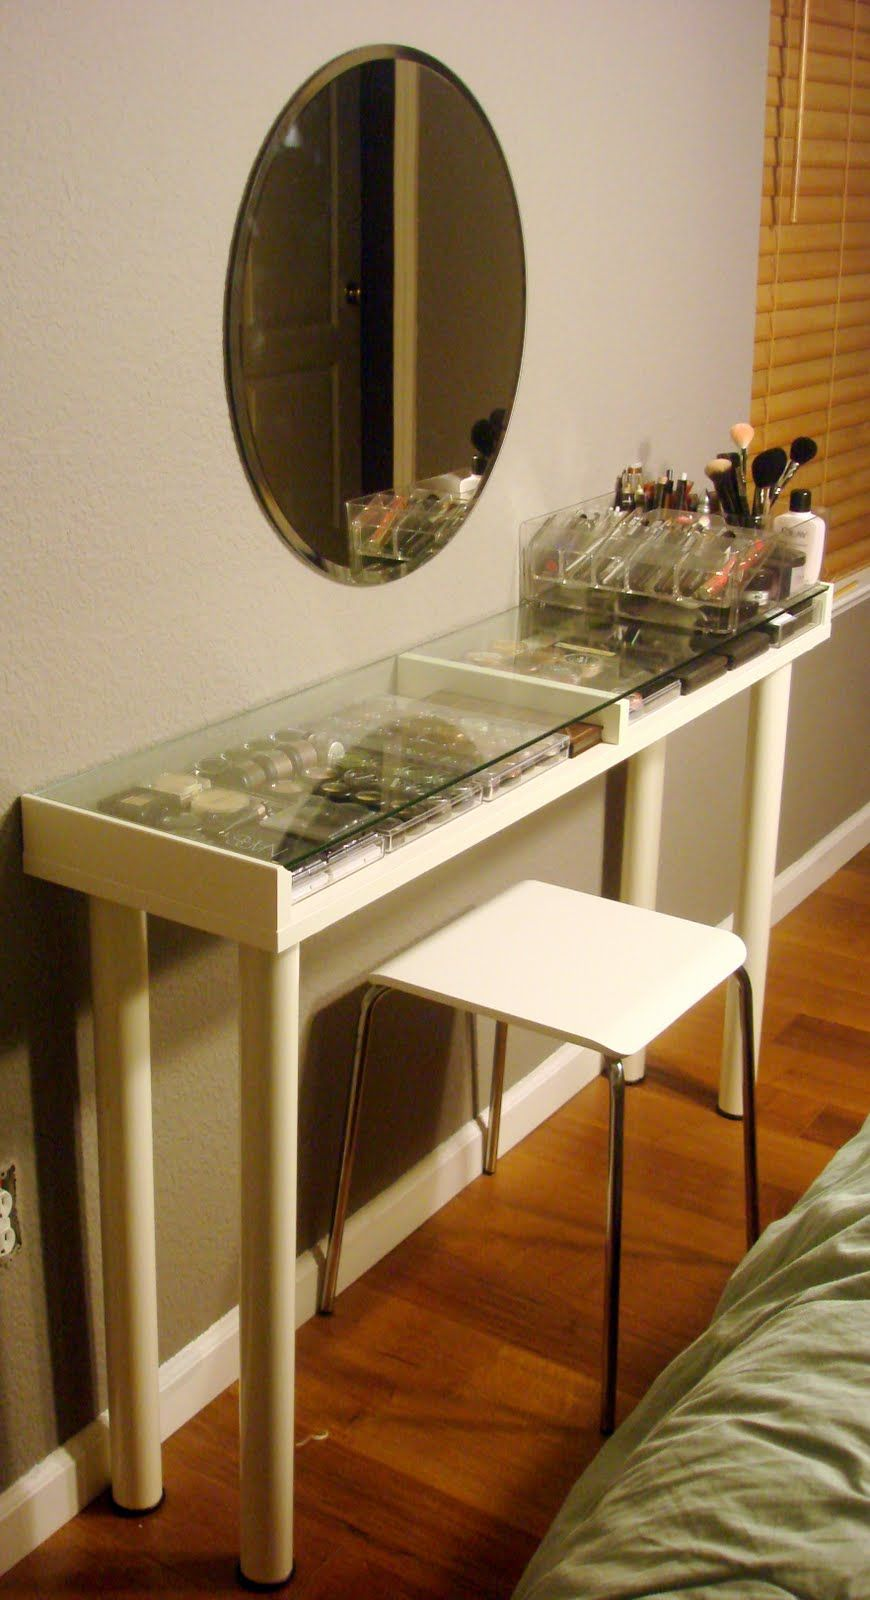 DIY Ikea Makeup Vanity - DIY Ikea Makeup Vanity Vanities And Vanity Tables